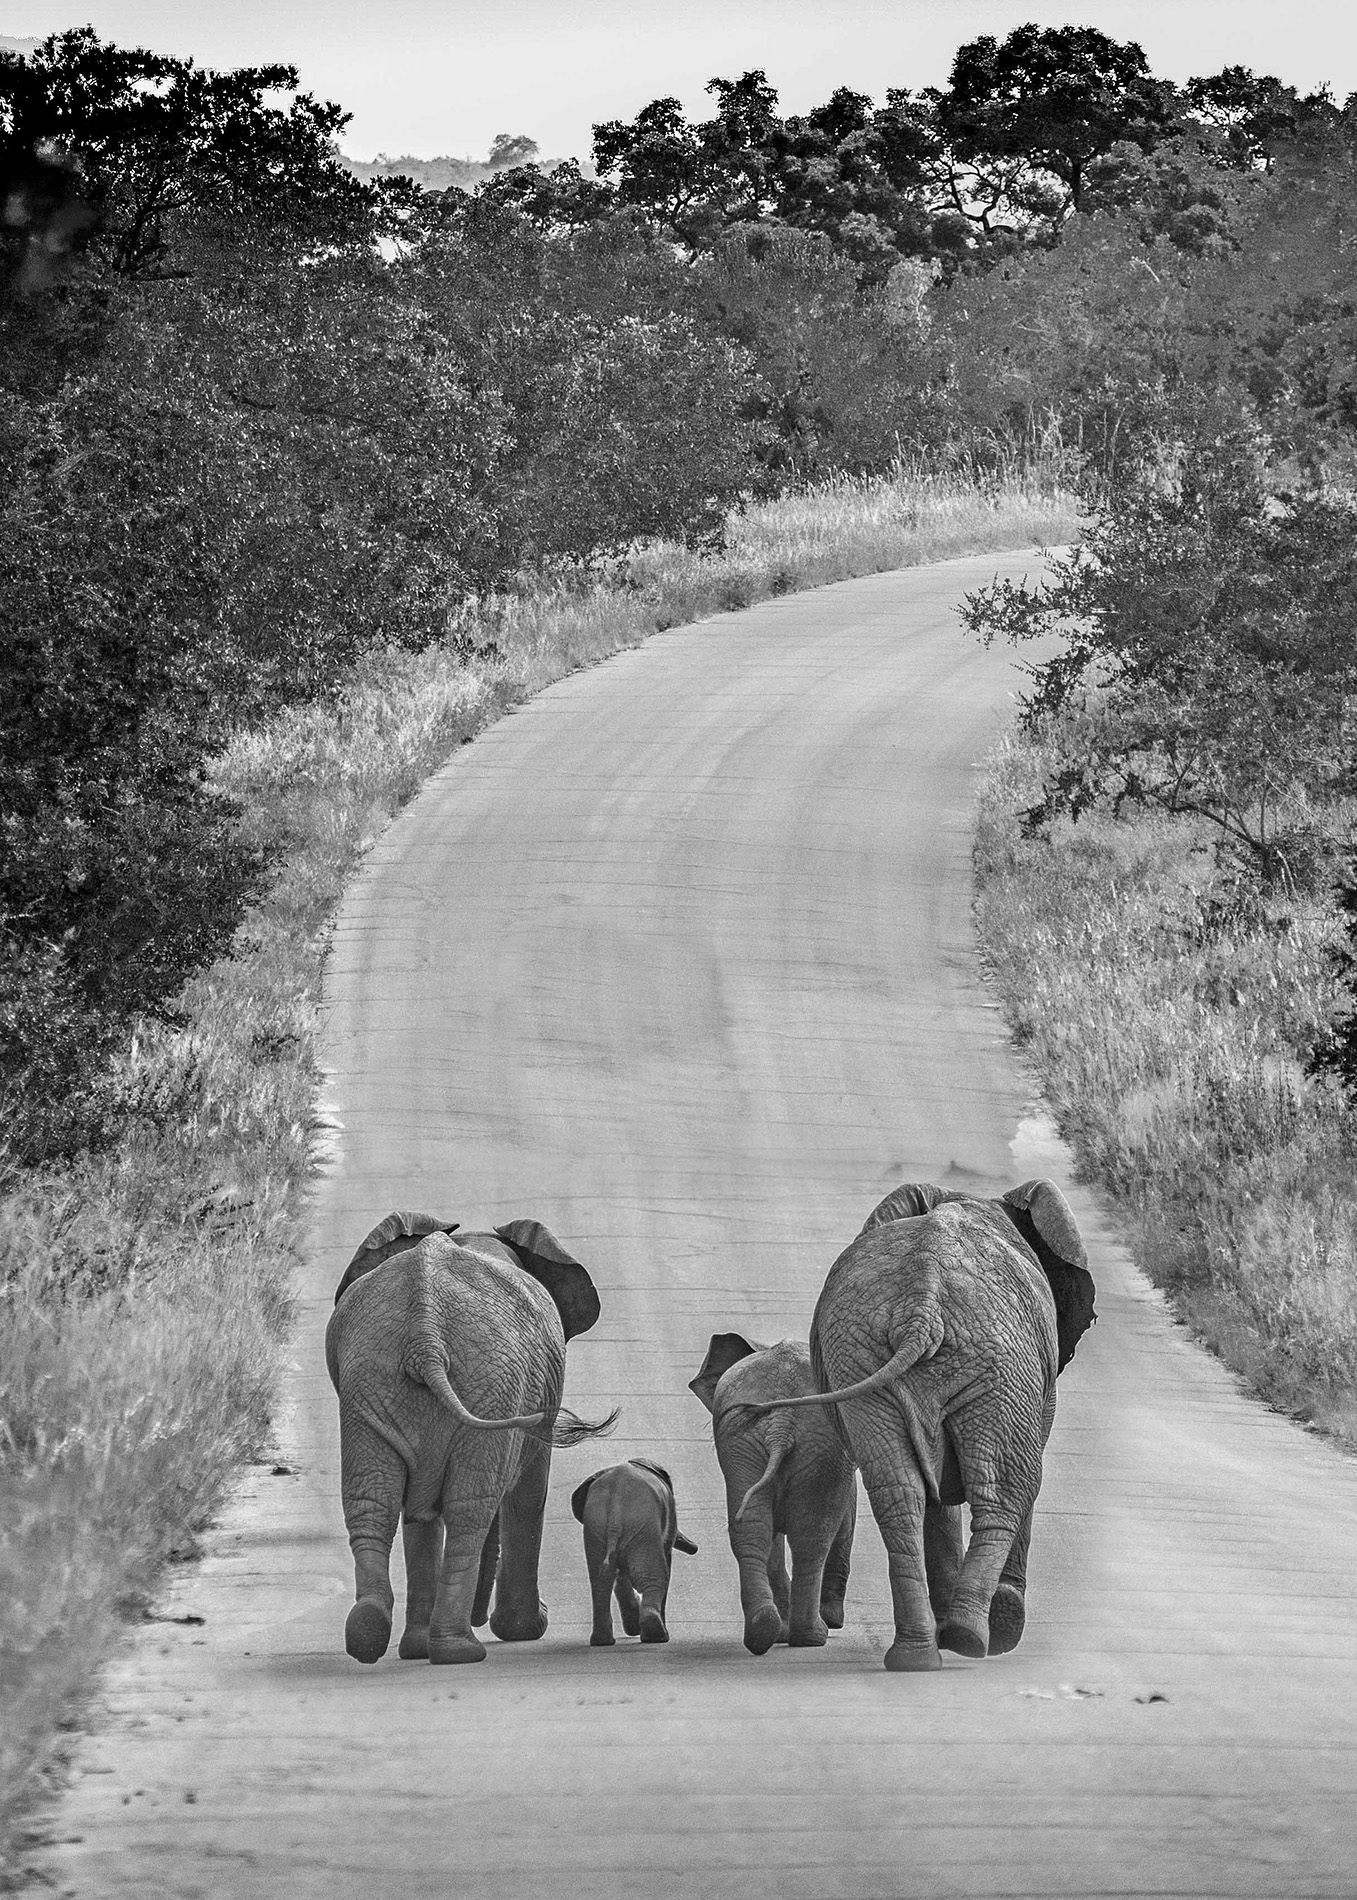 Family Stroll - Monochrome Print (Open) - Name Withheld Per Request